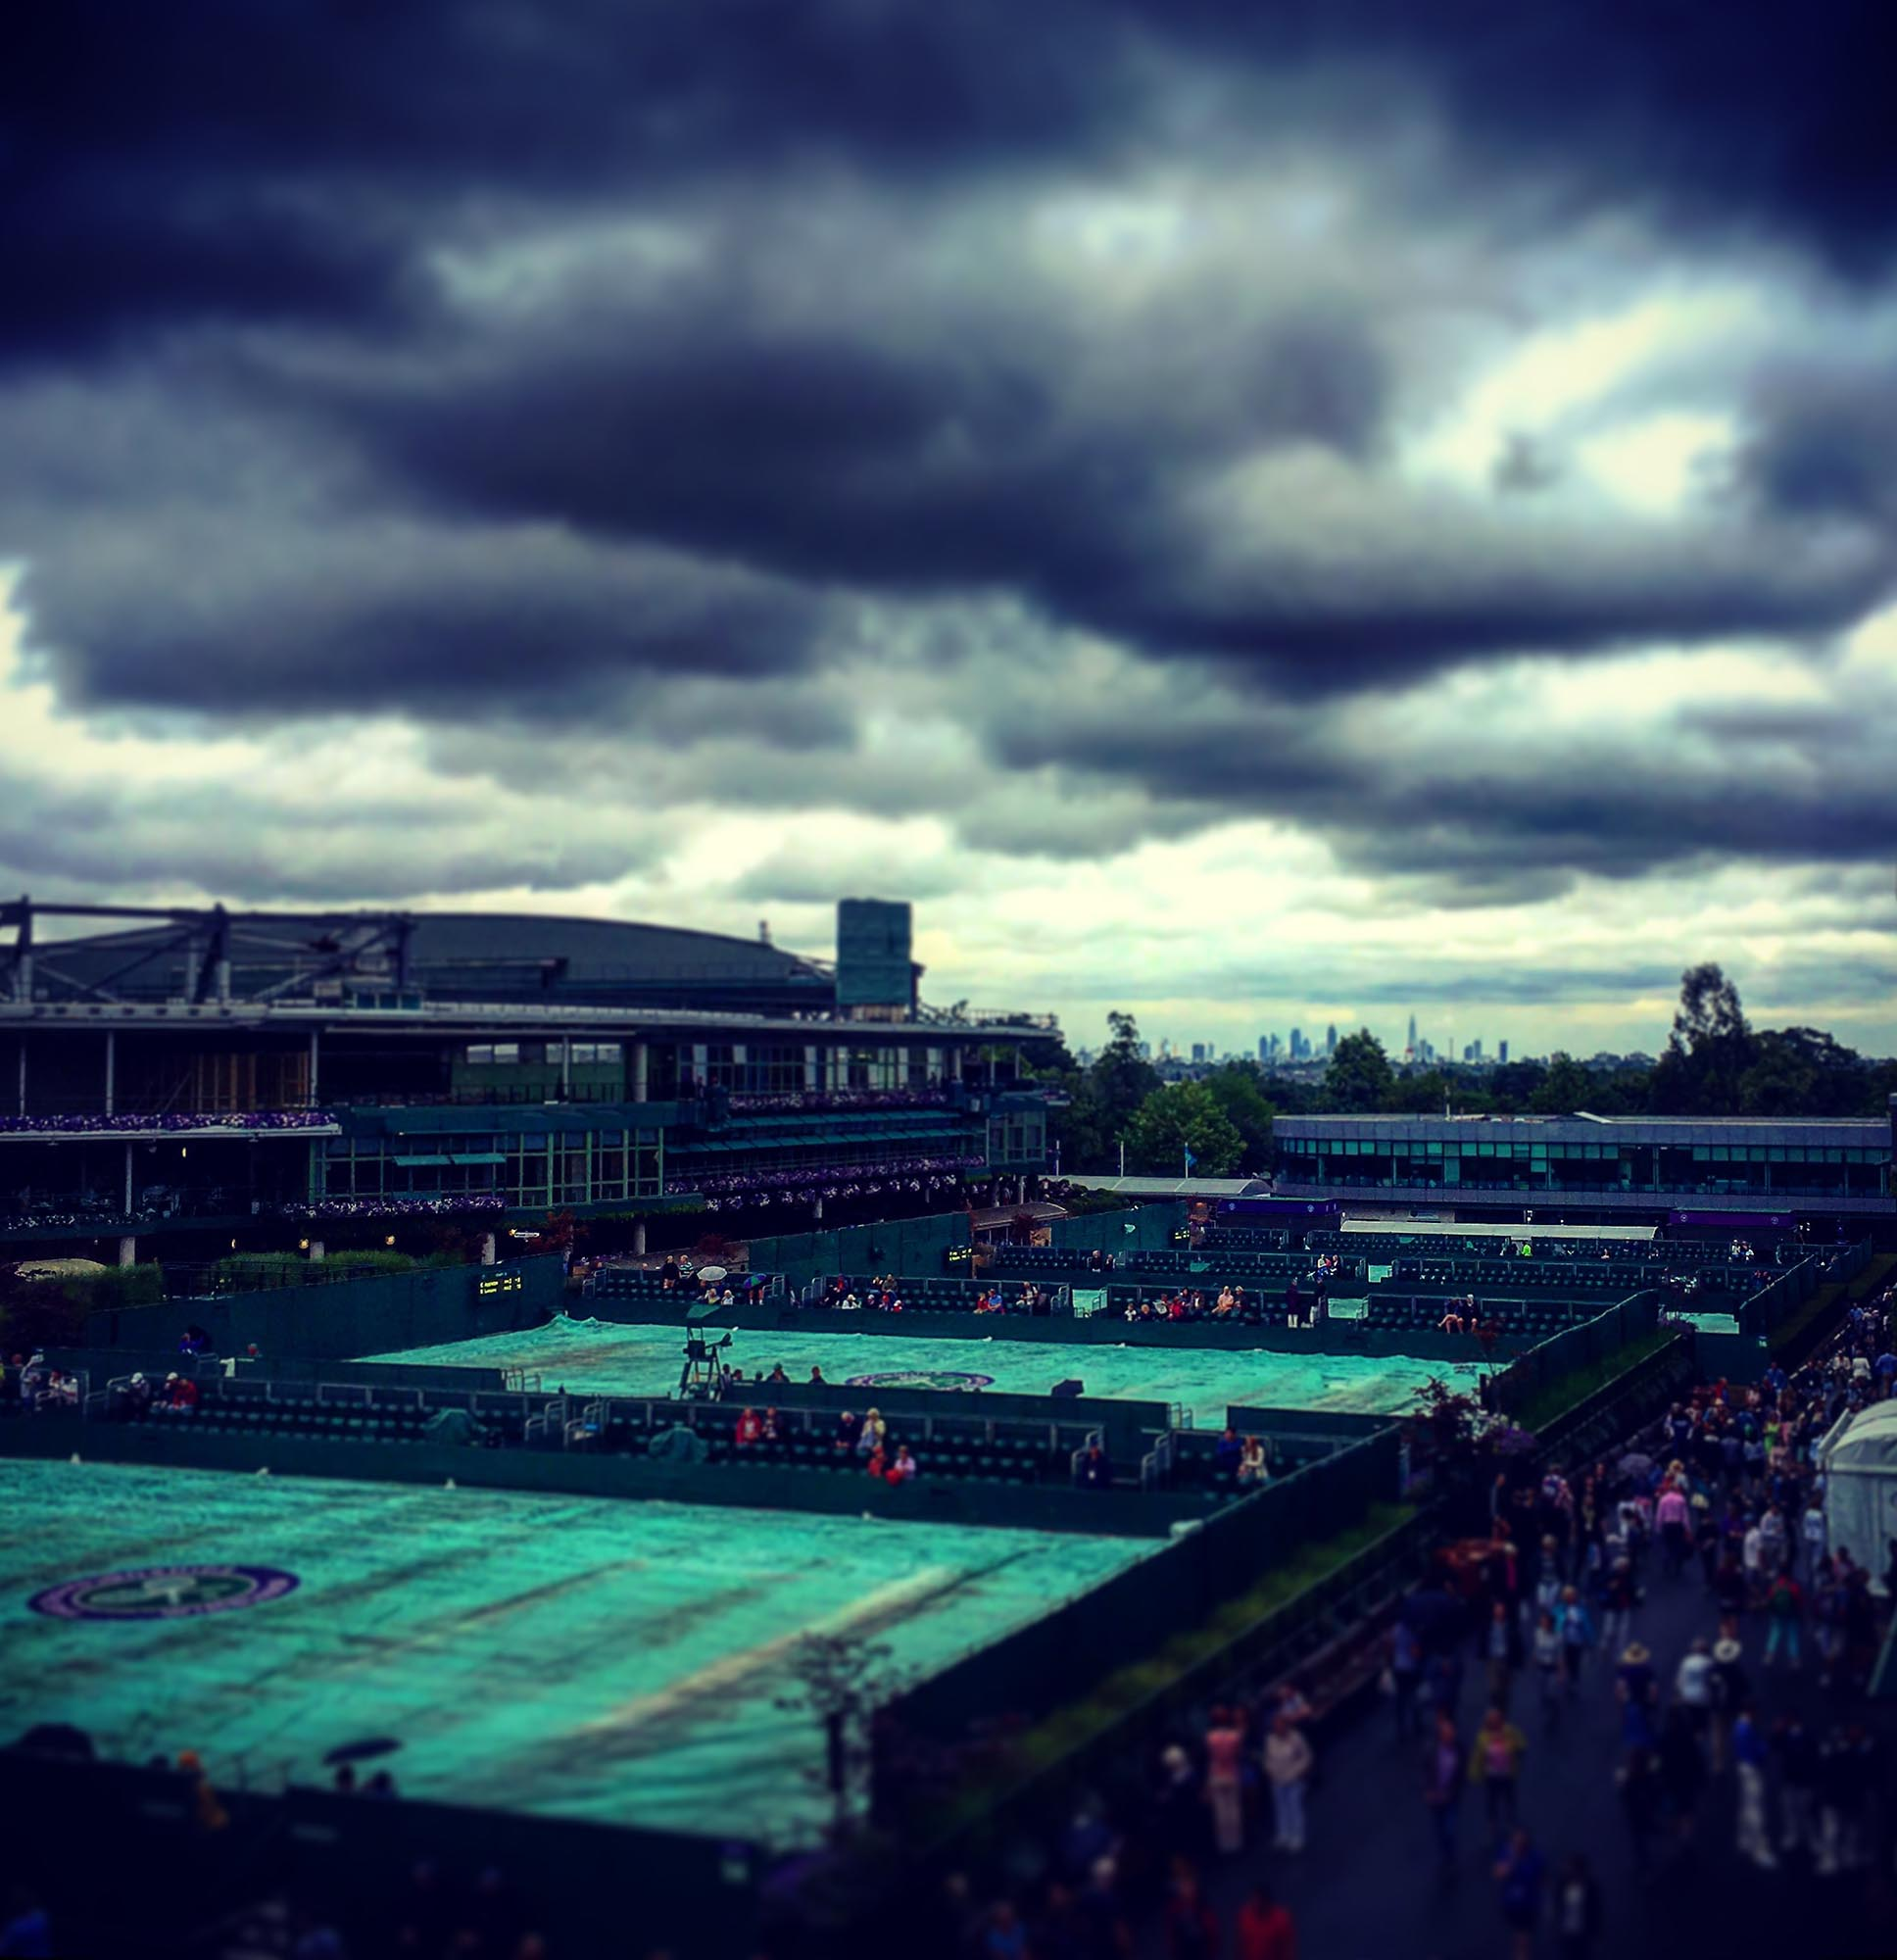 Rain covers Wimbledon Tennis